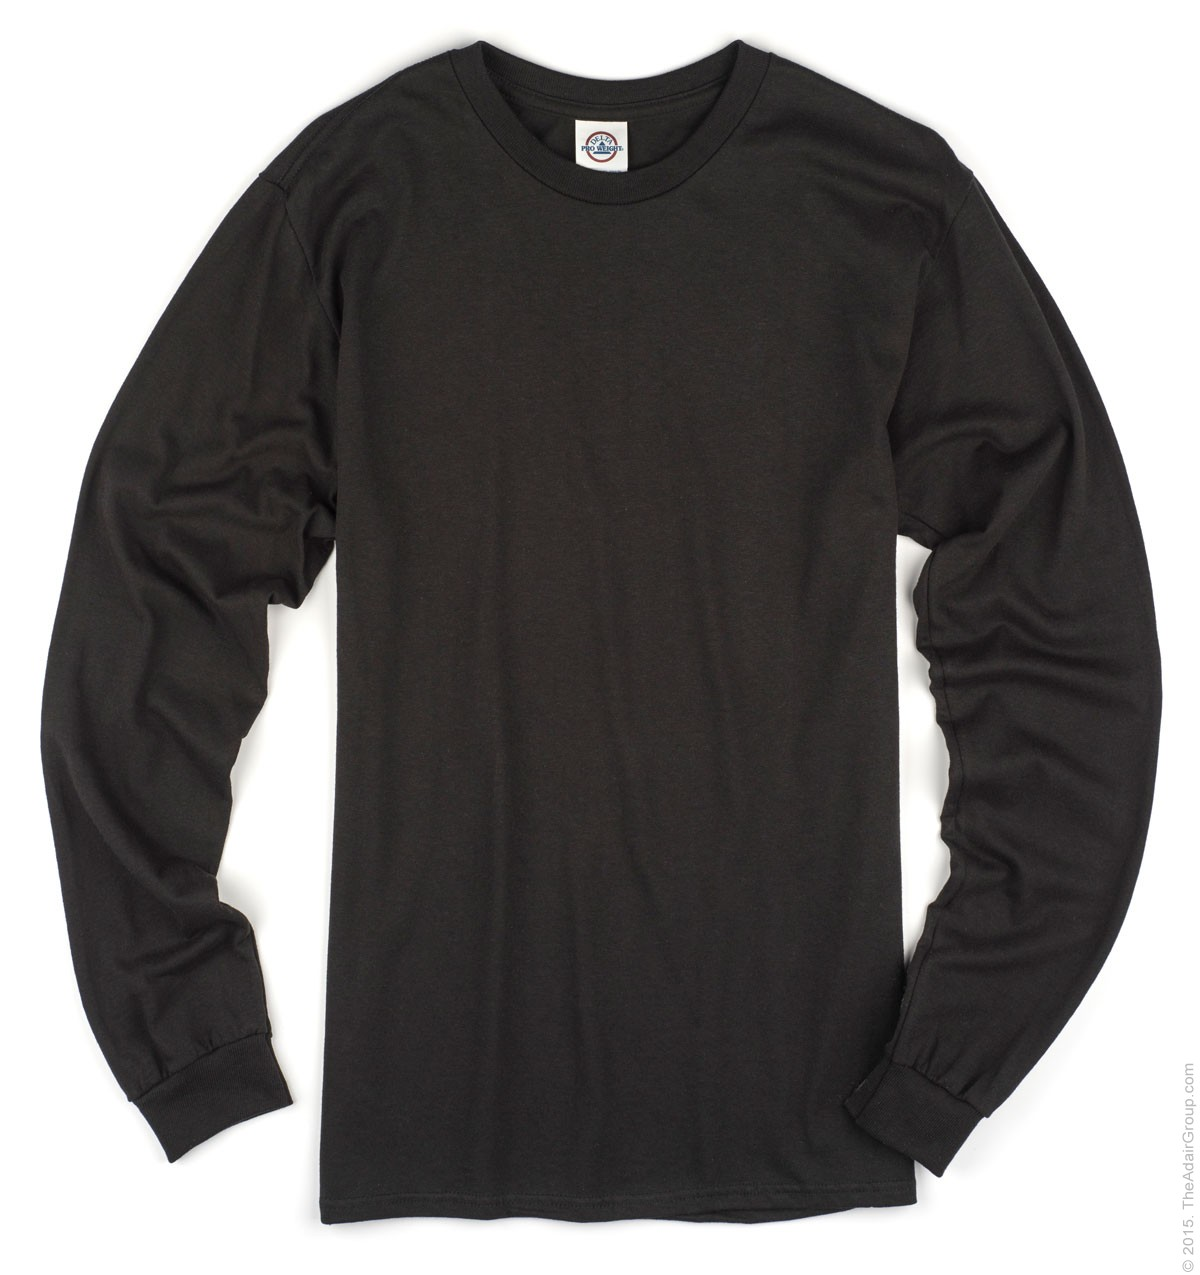 Plain Long Sleeve Black Shirt